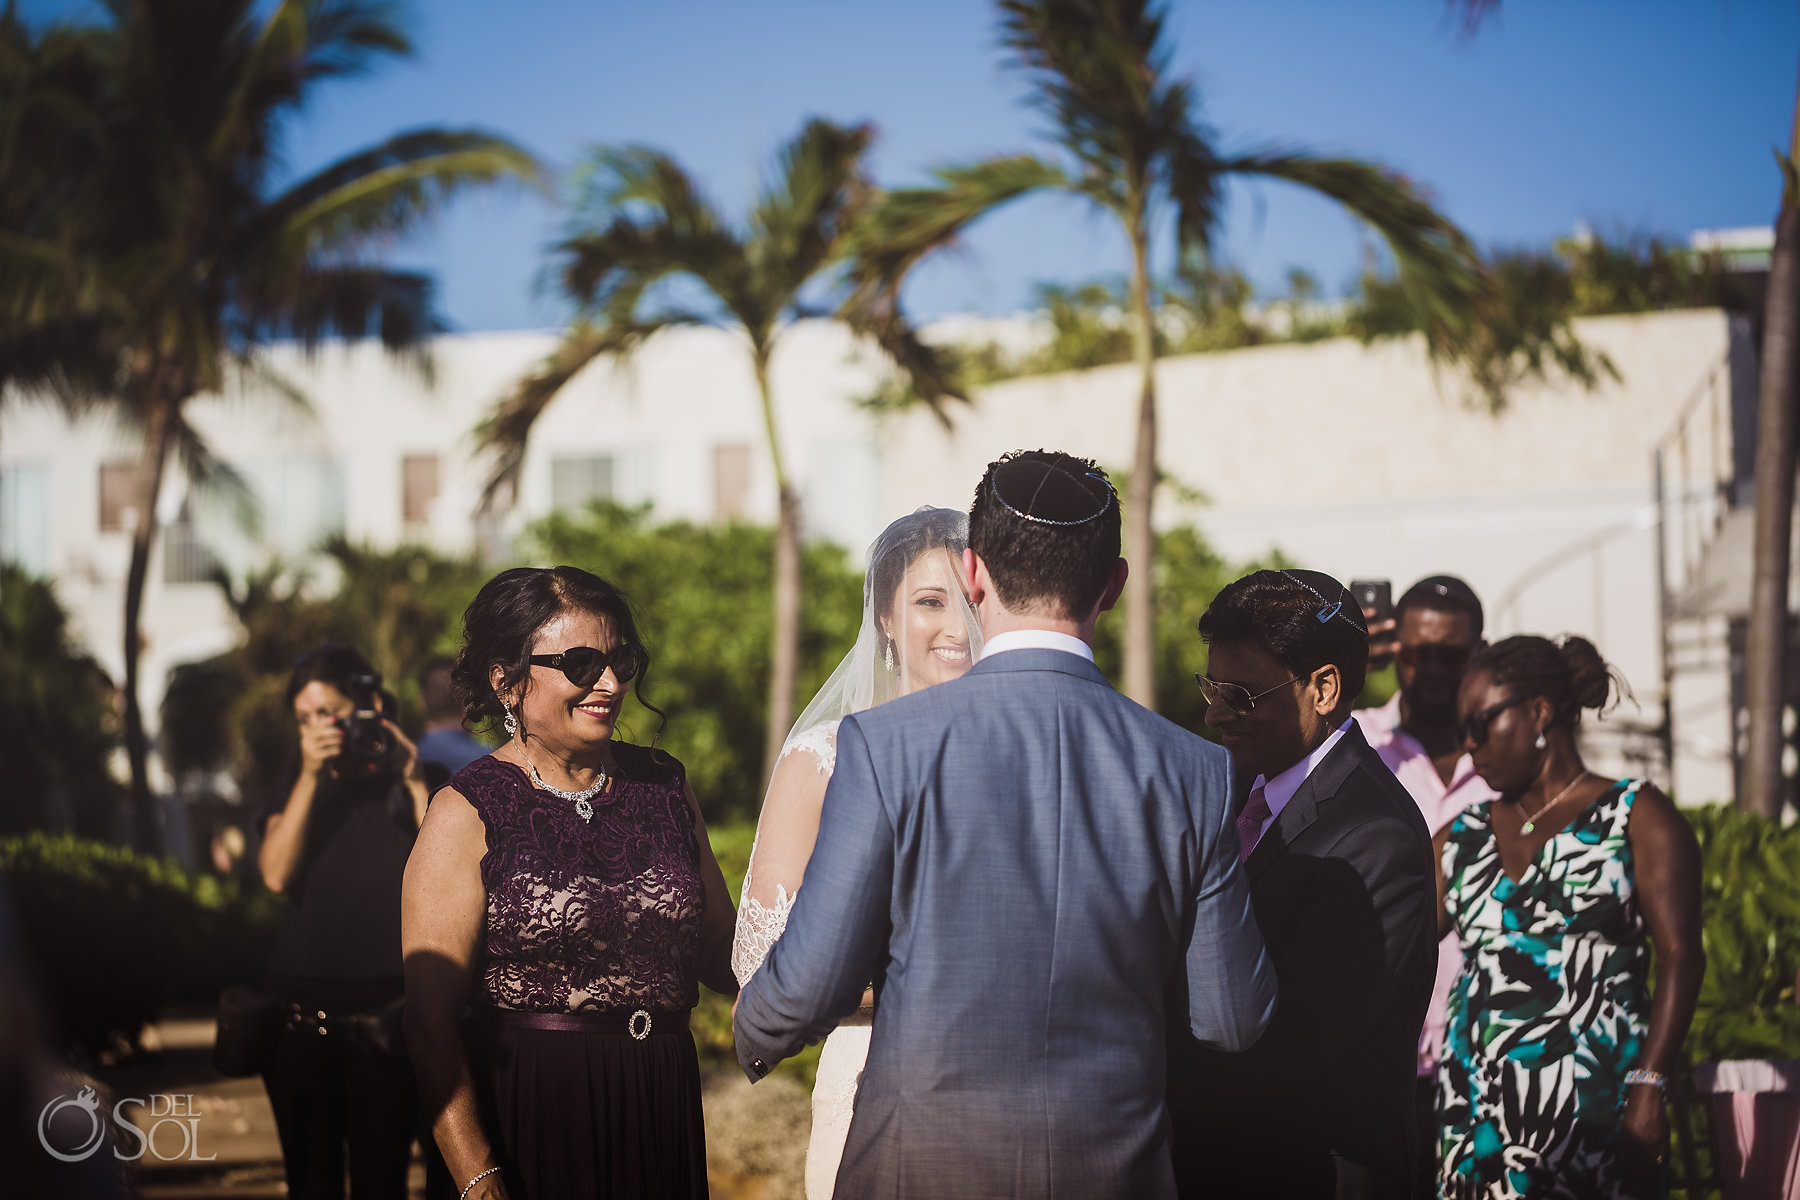 Dreams Tulum Jewish Wedding ceremony traditions